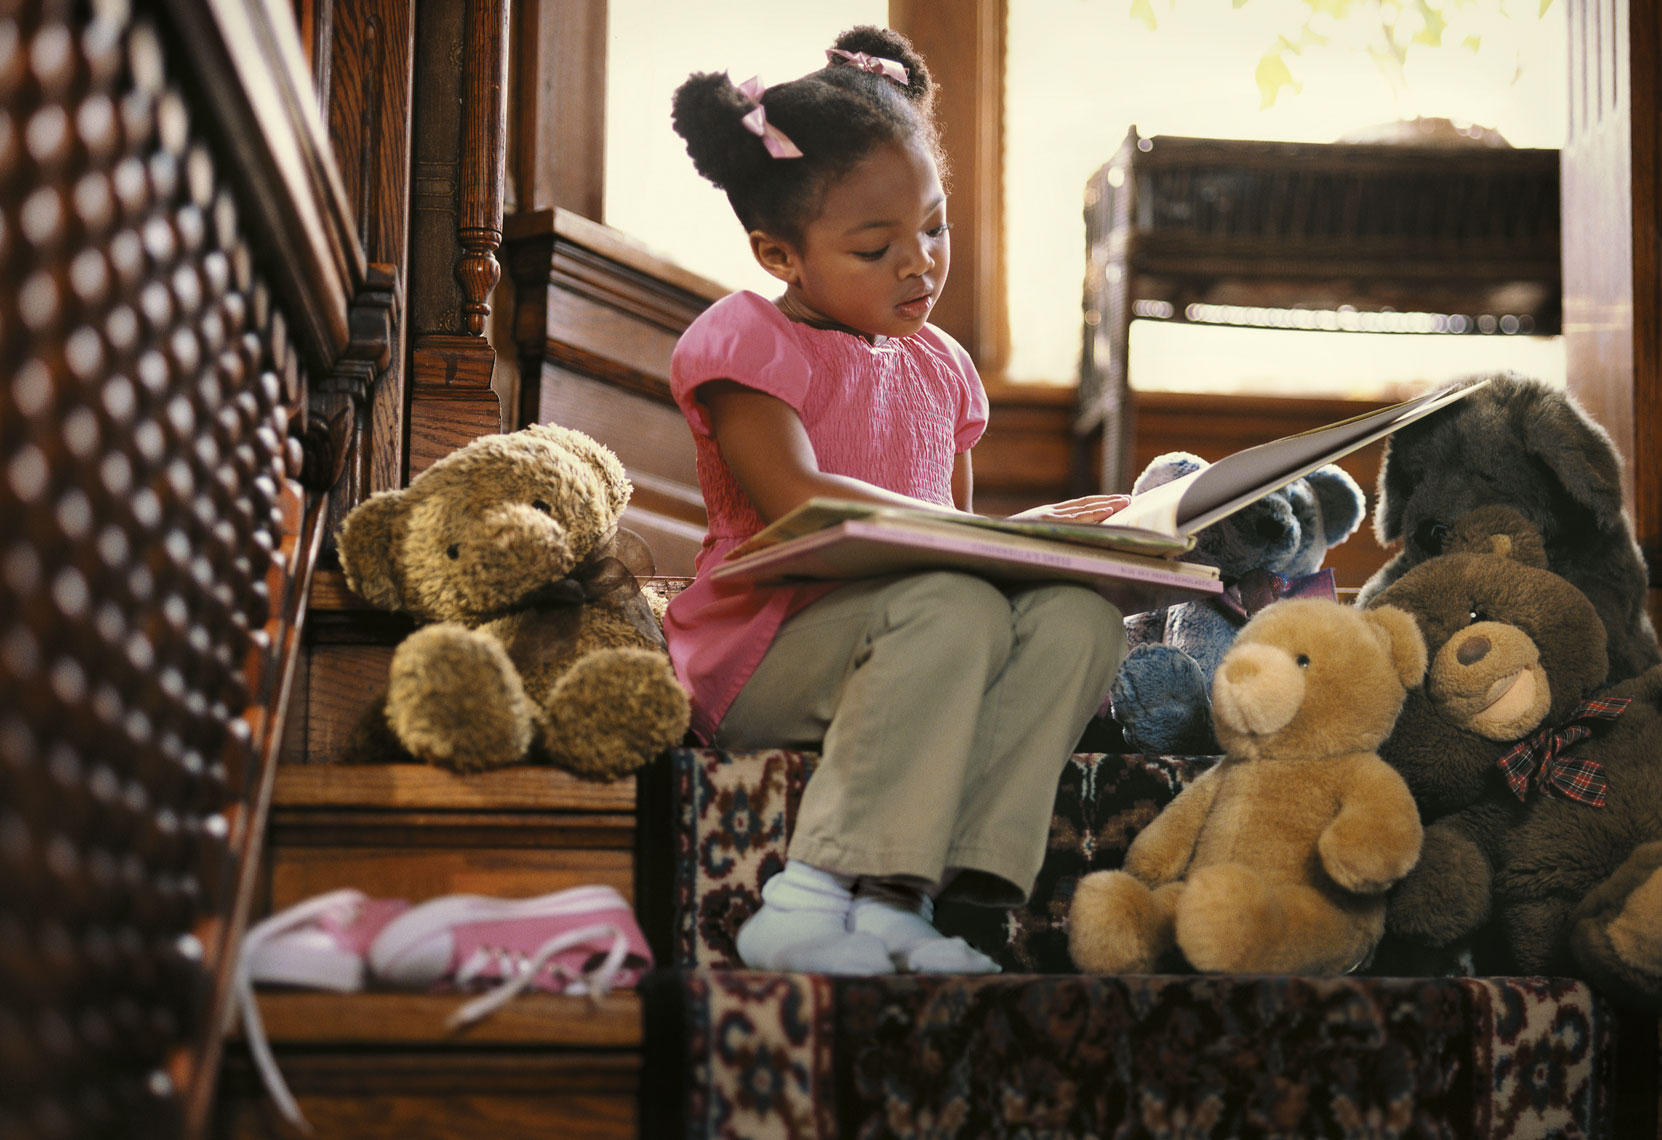 Environmental portrait of a young African American girl reading books for an advertising campaign